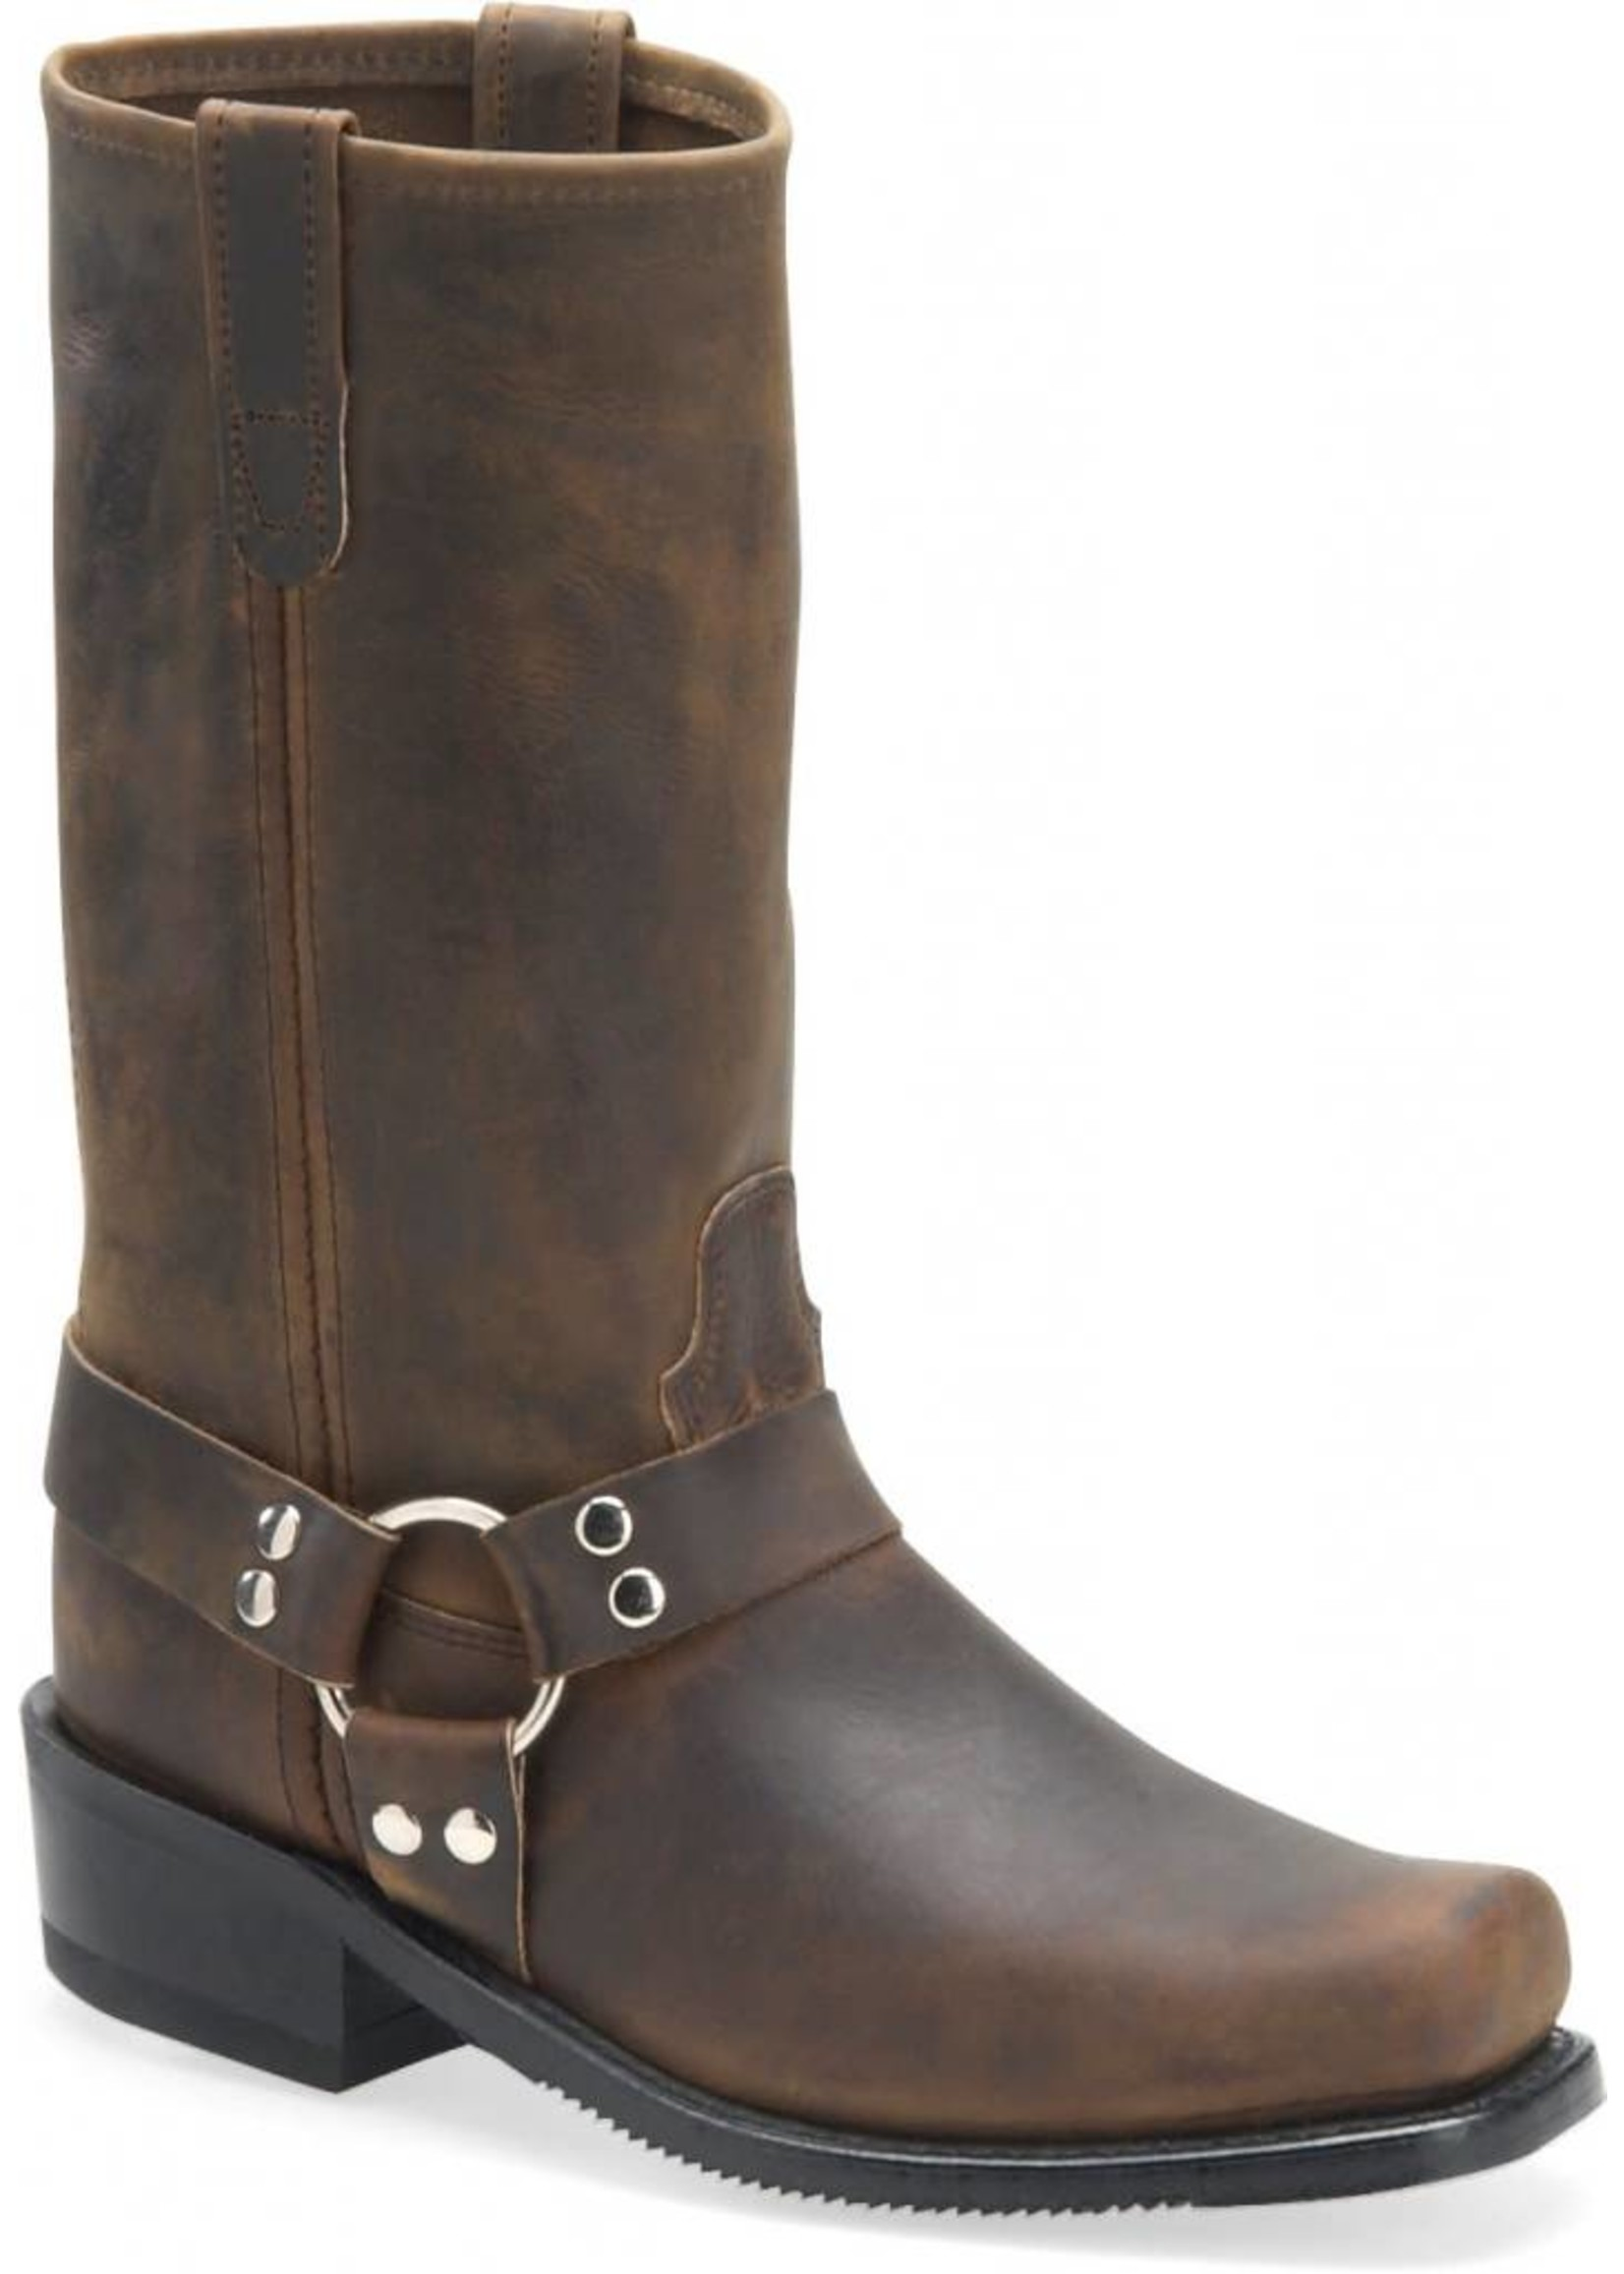 "Double H Men's 12"" Domestic Harness Boot Tan Crazyhorse 4004"